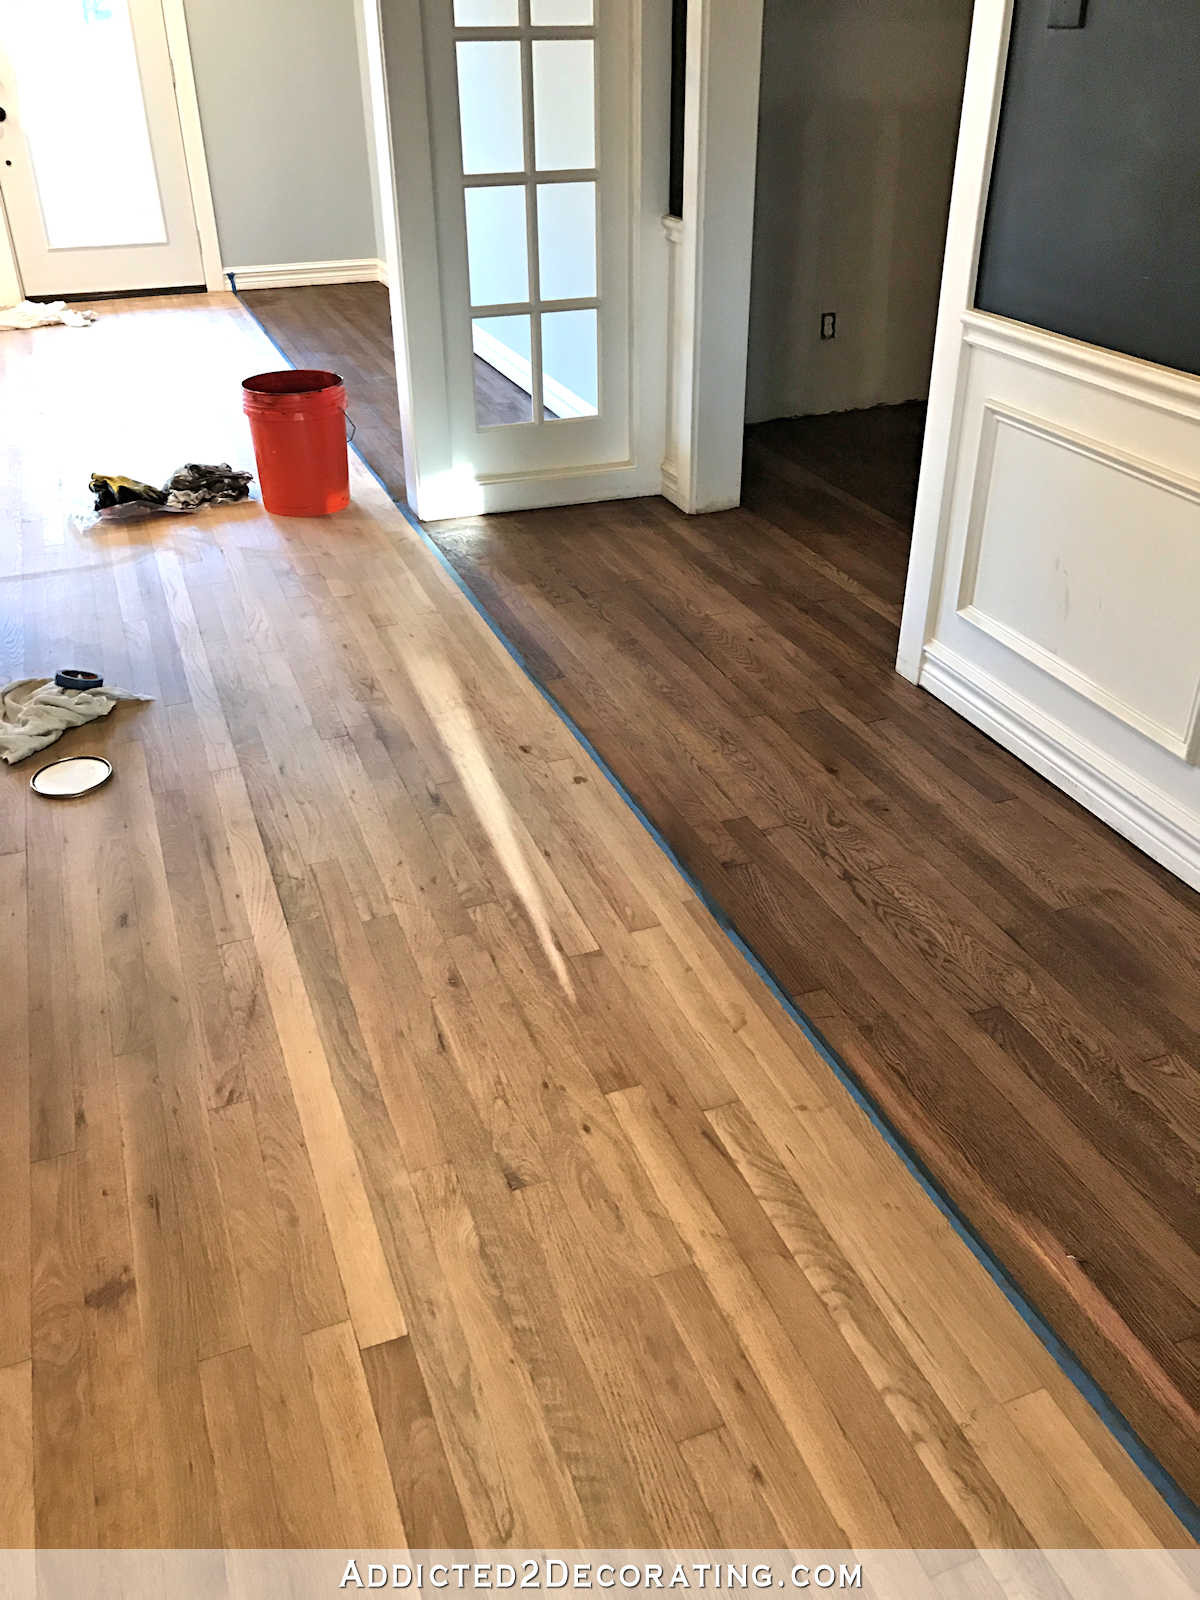 refinishing hardwood floors yourself without sanding of adventures in staining my red oak hardwood floors products process with staining red oak hardwood floors 6 stain on partial floor in entryway and music